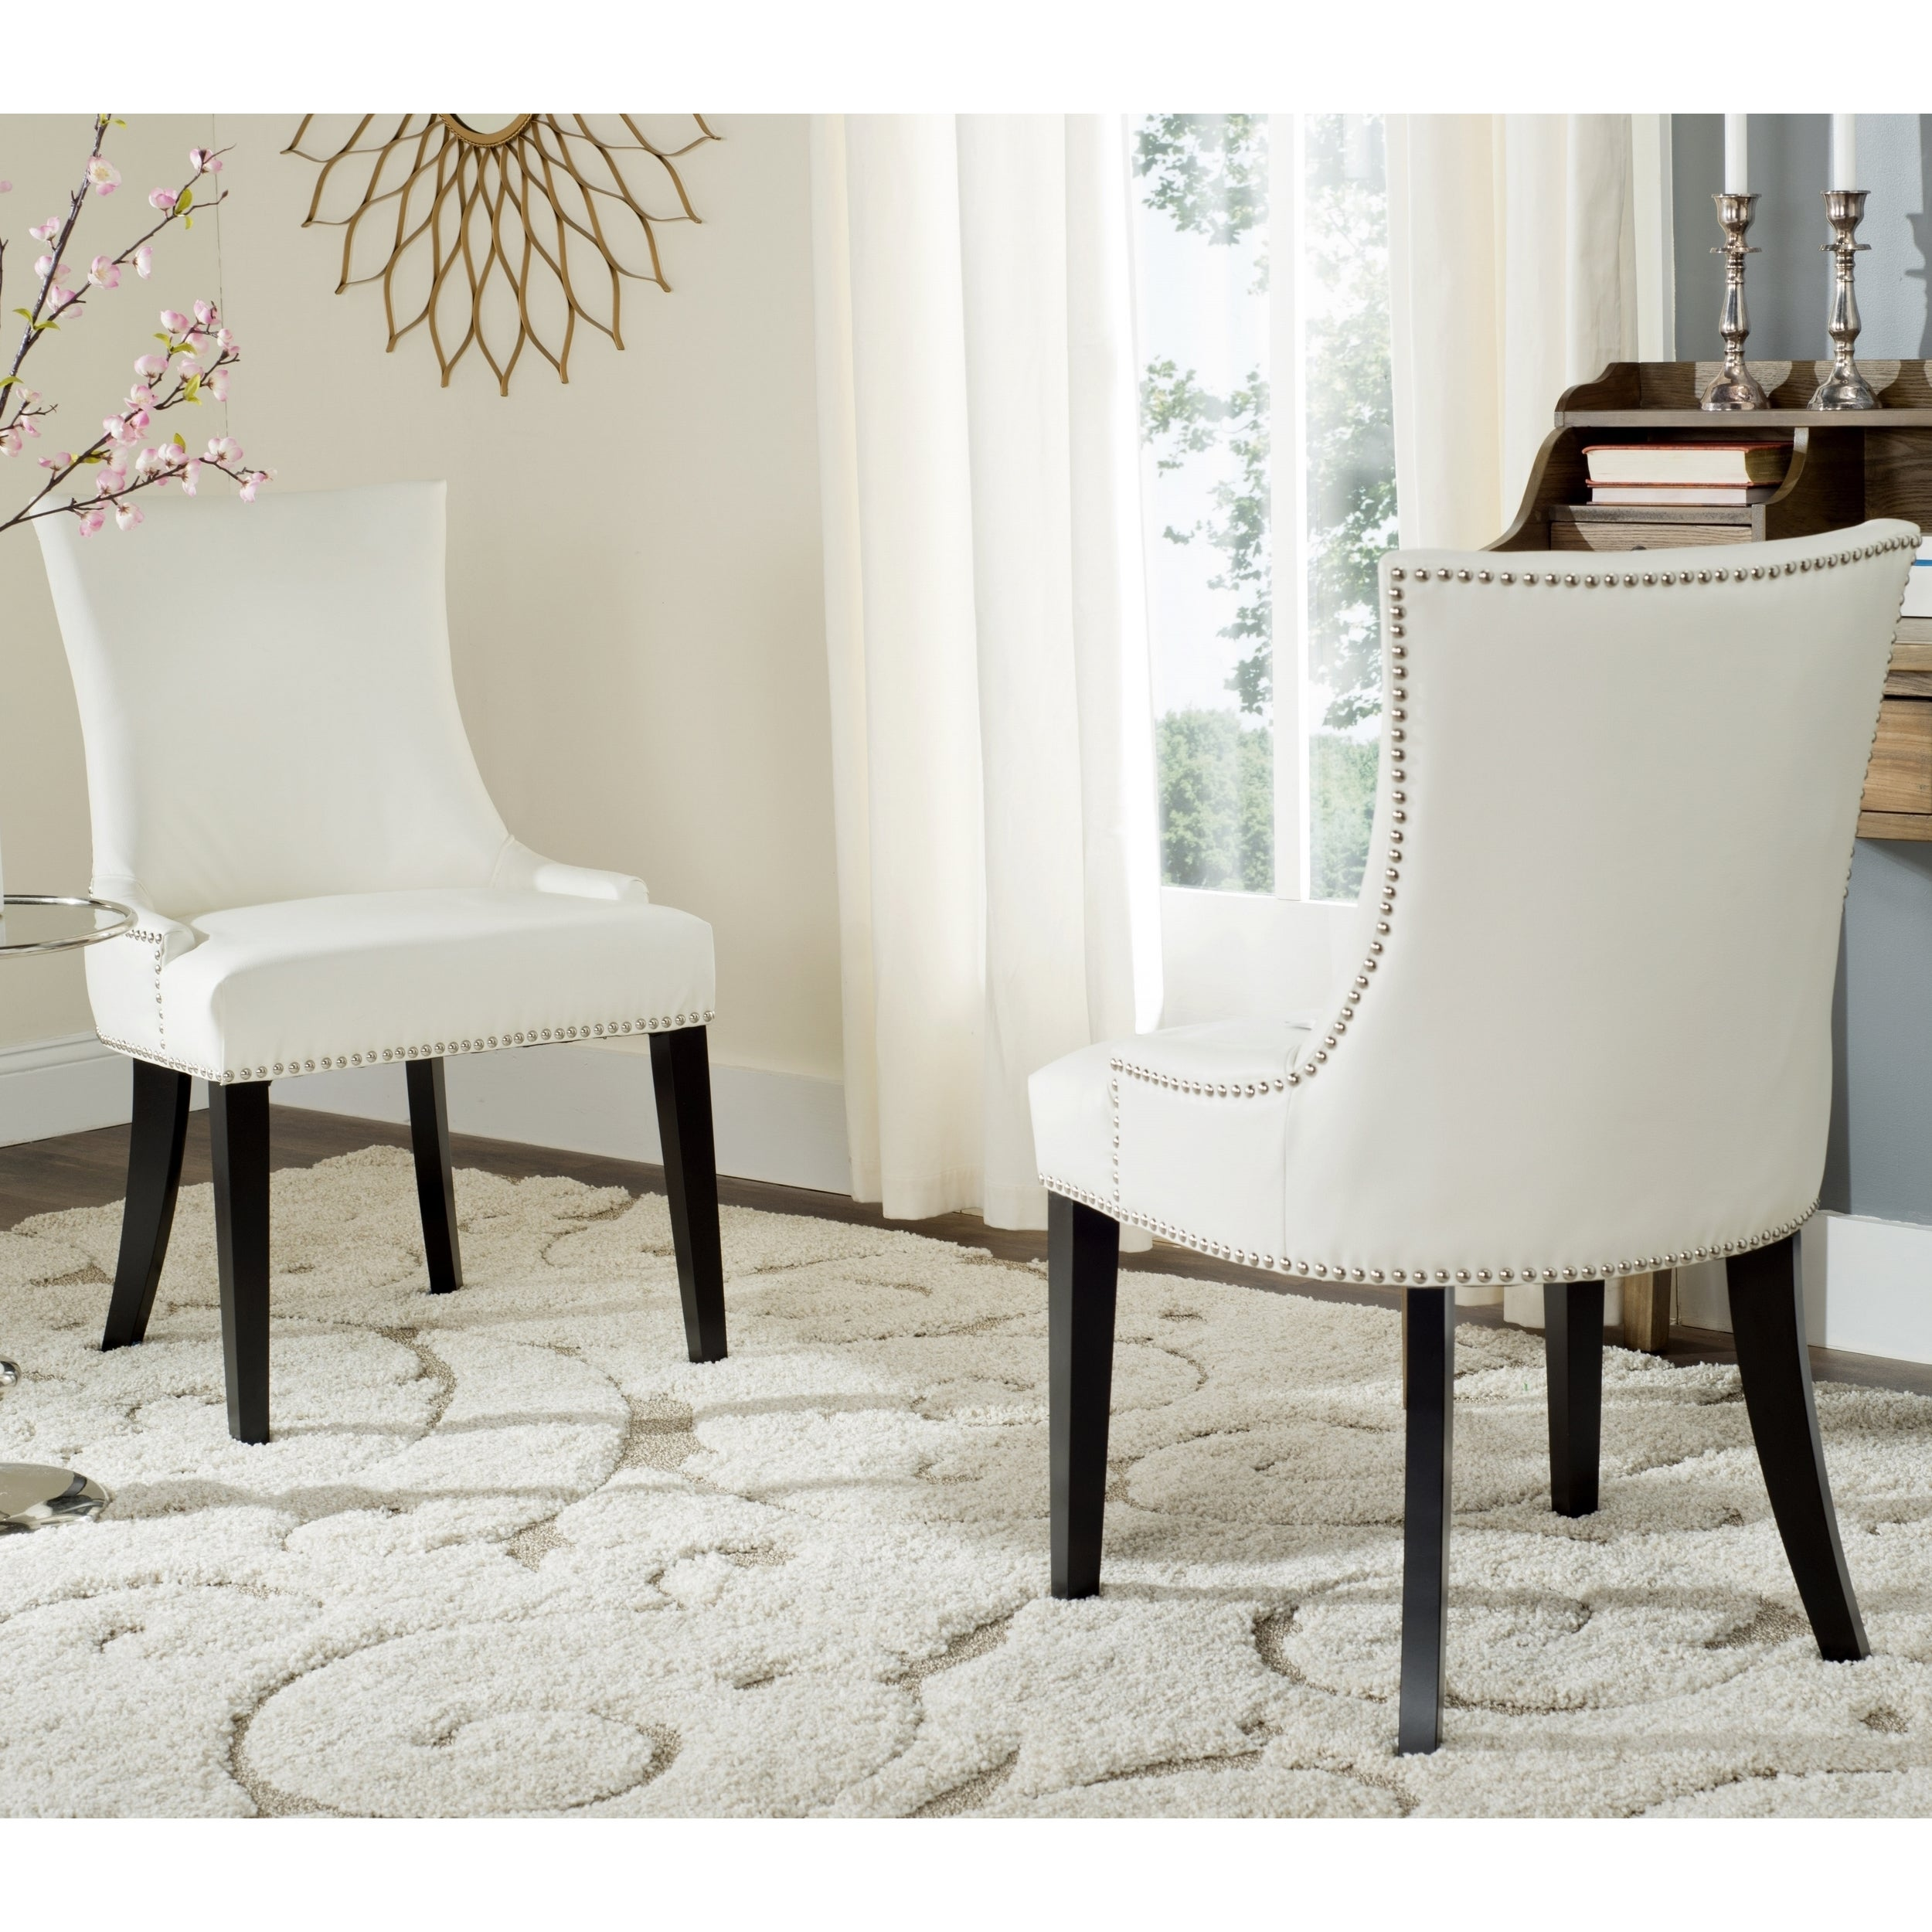 Buy White Safavieh Kitchen & Dining Room Chairs Online at ...